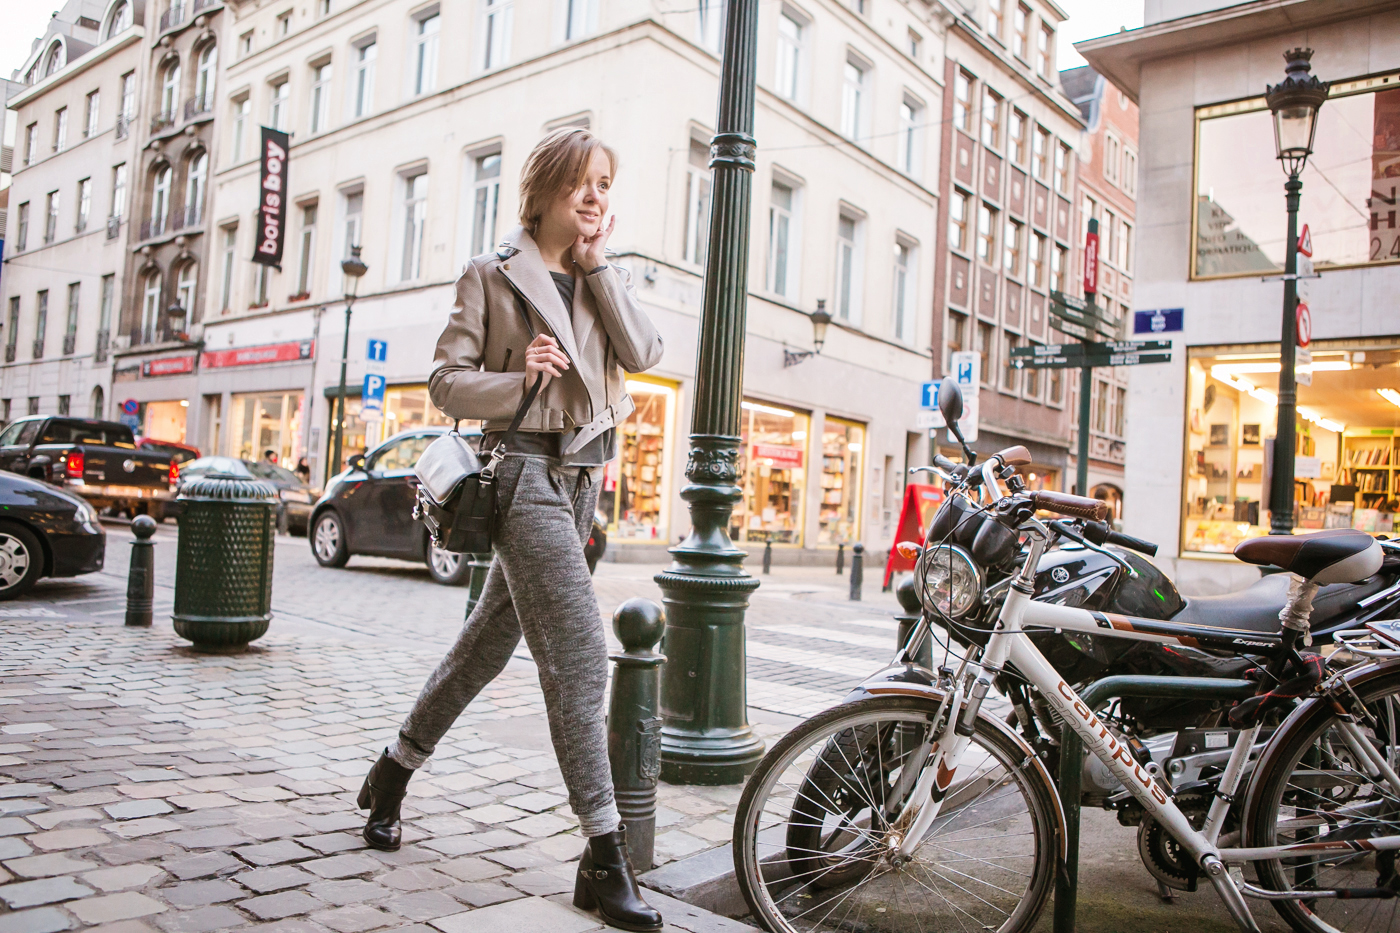 darya kamalova from thecablook com goes to belgium brussels charleroi wears proenza schouler ps11 bag and total grey outfit-38 copy